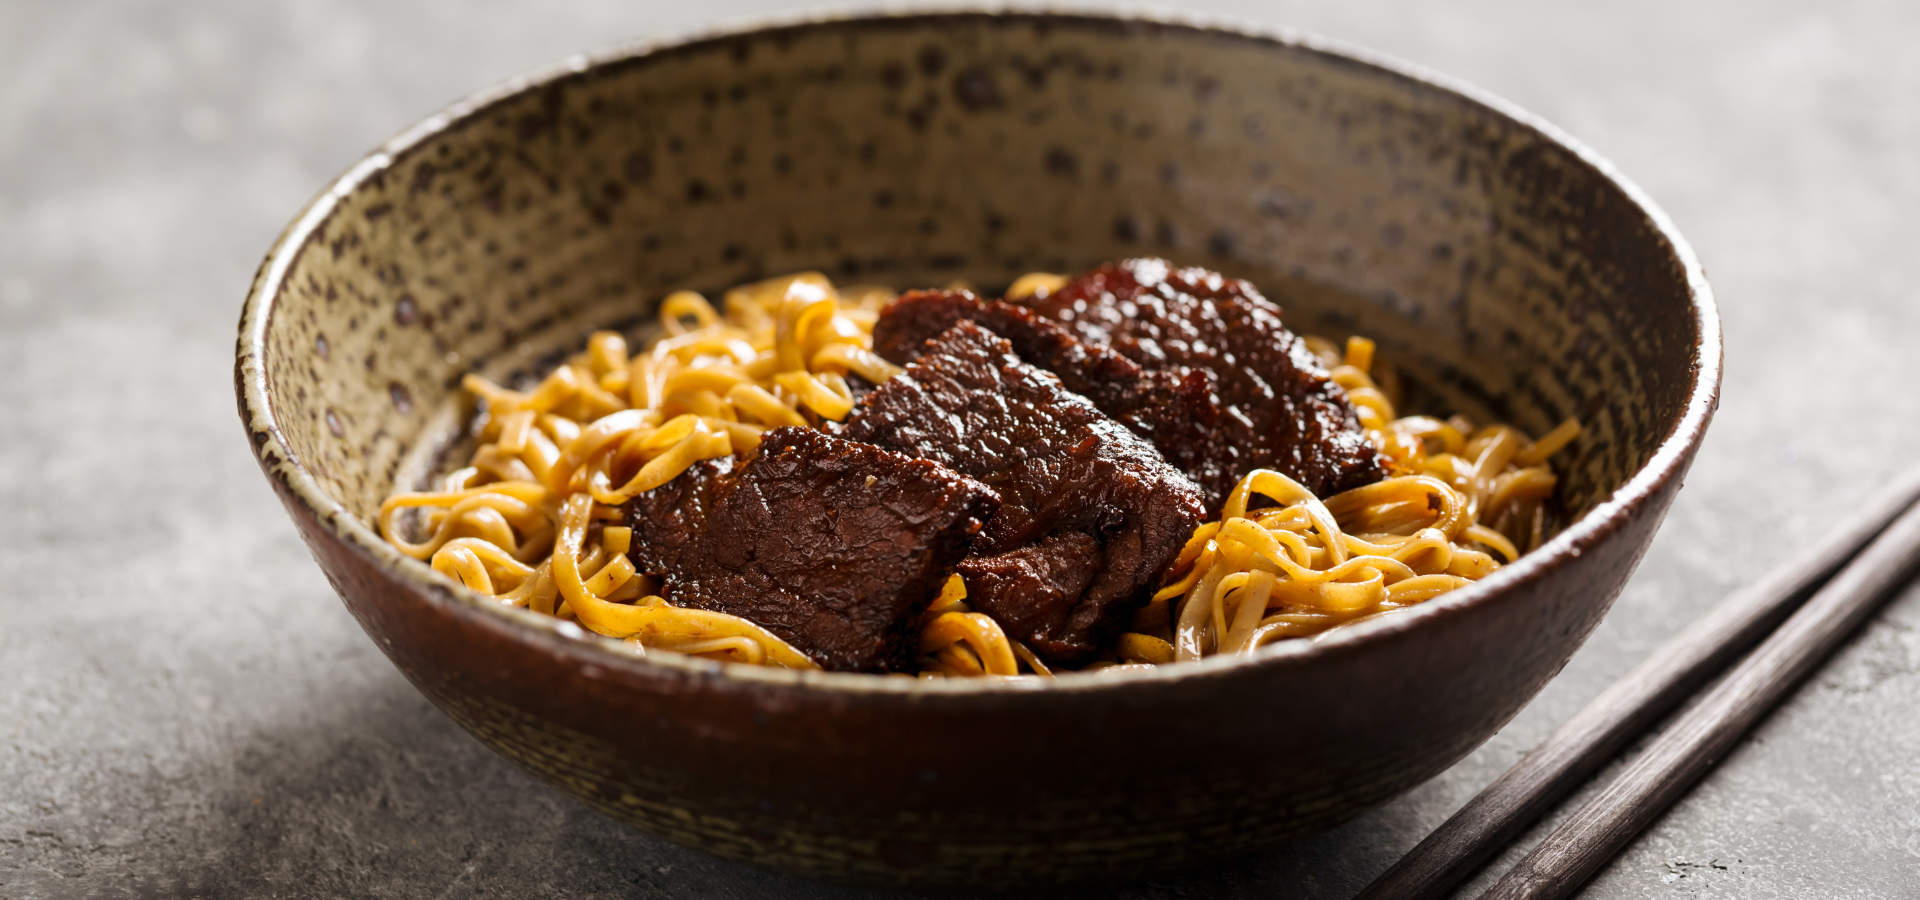 Asian noodle dish with beef in a bowl